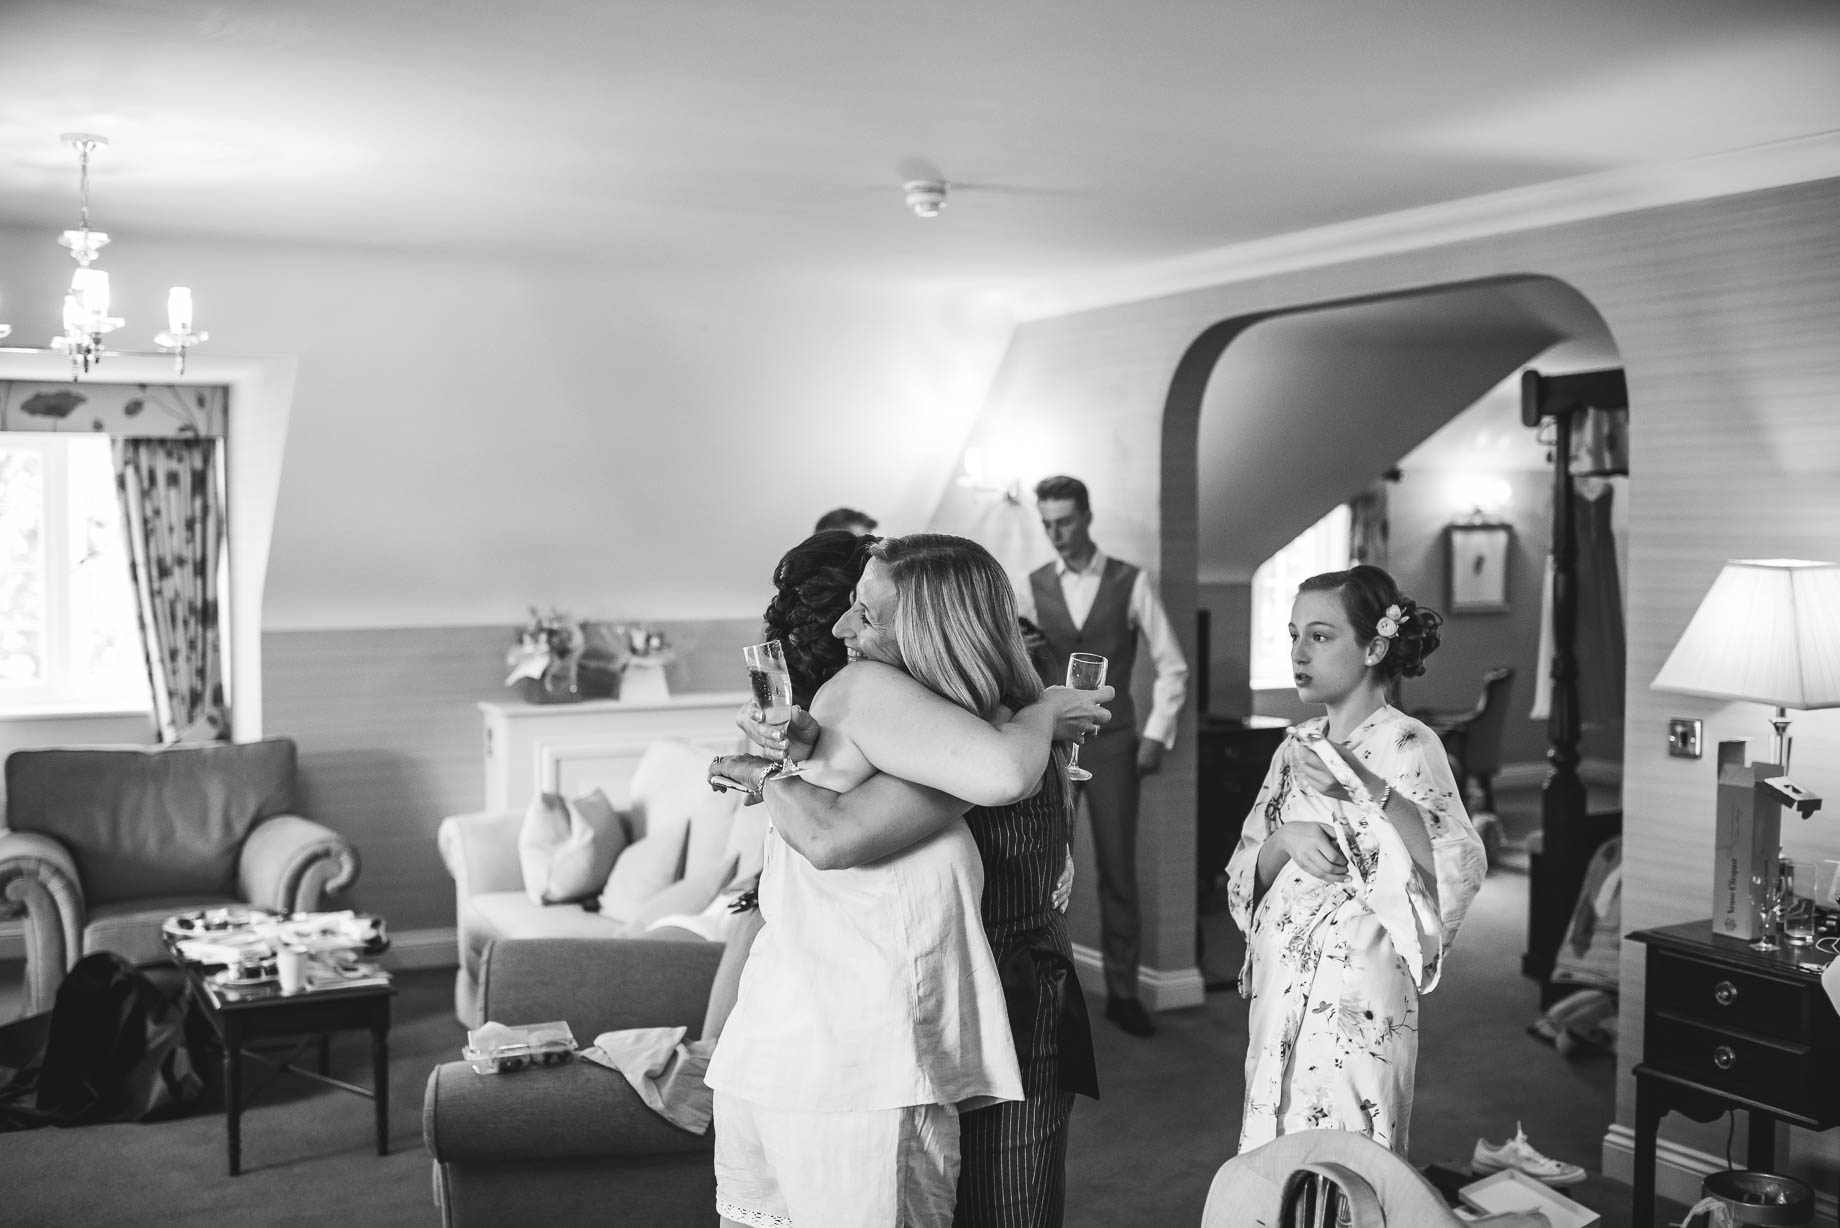 Luton Hoo wedding photography by Guy Collier Photography - Lauren and Gem (33 of 178)